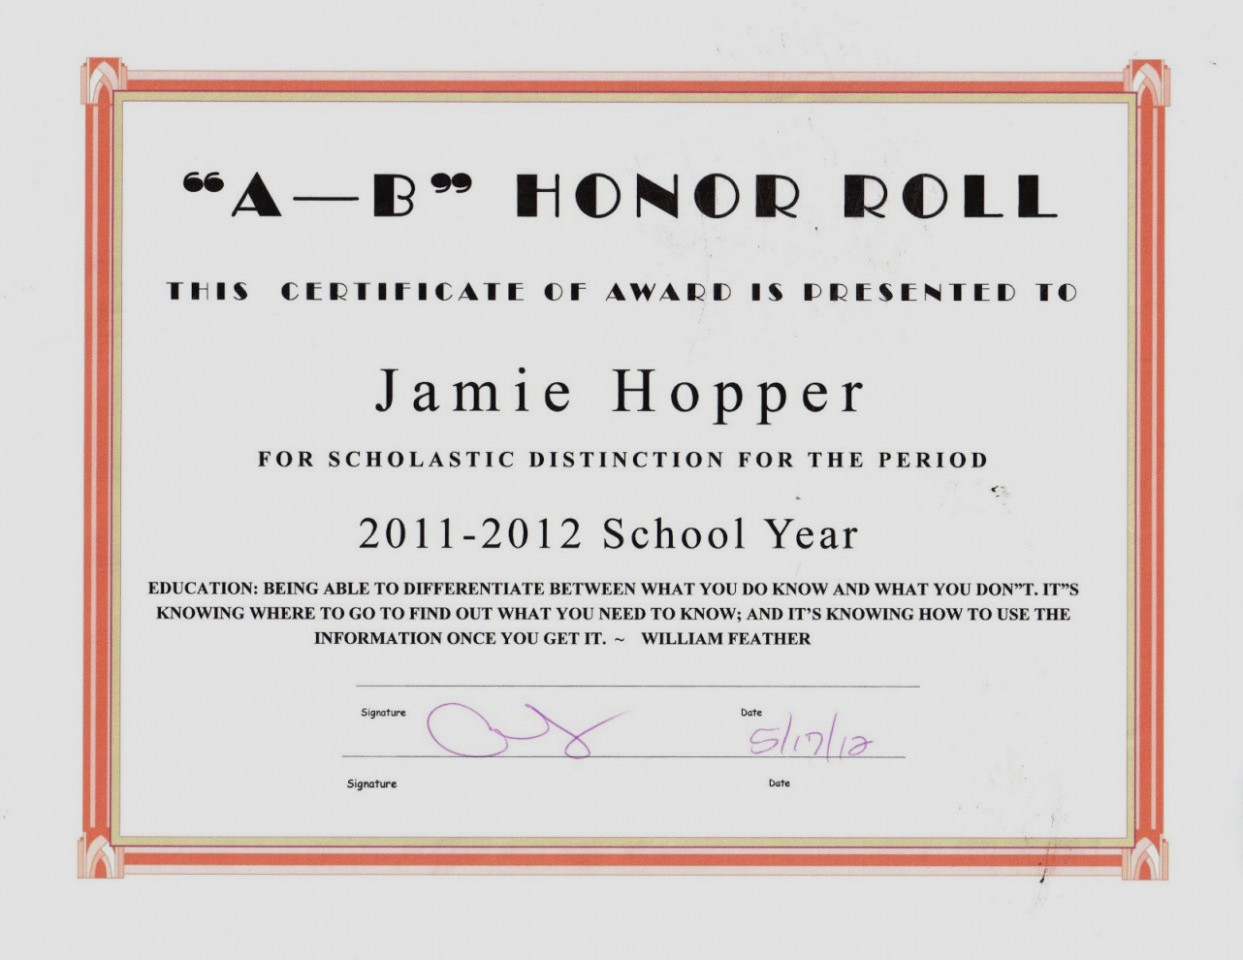 Honor Roll Certificate Template Word Lovely B Honor Roll Certificate Template Reeviewer